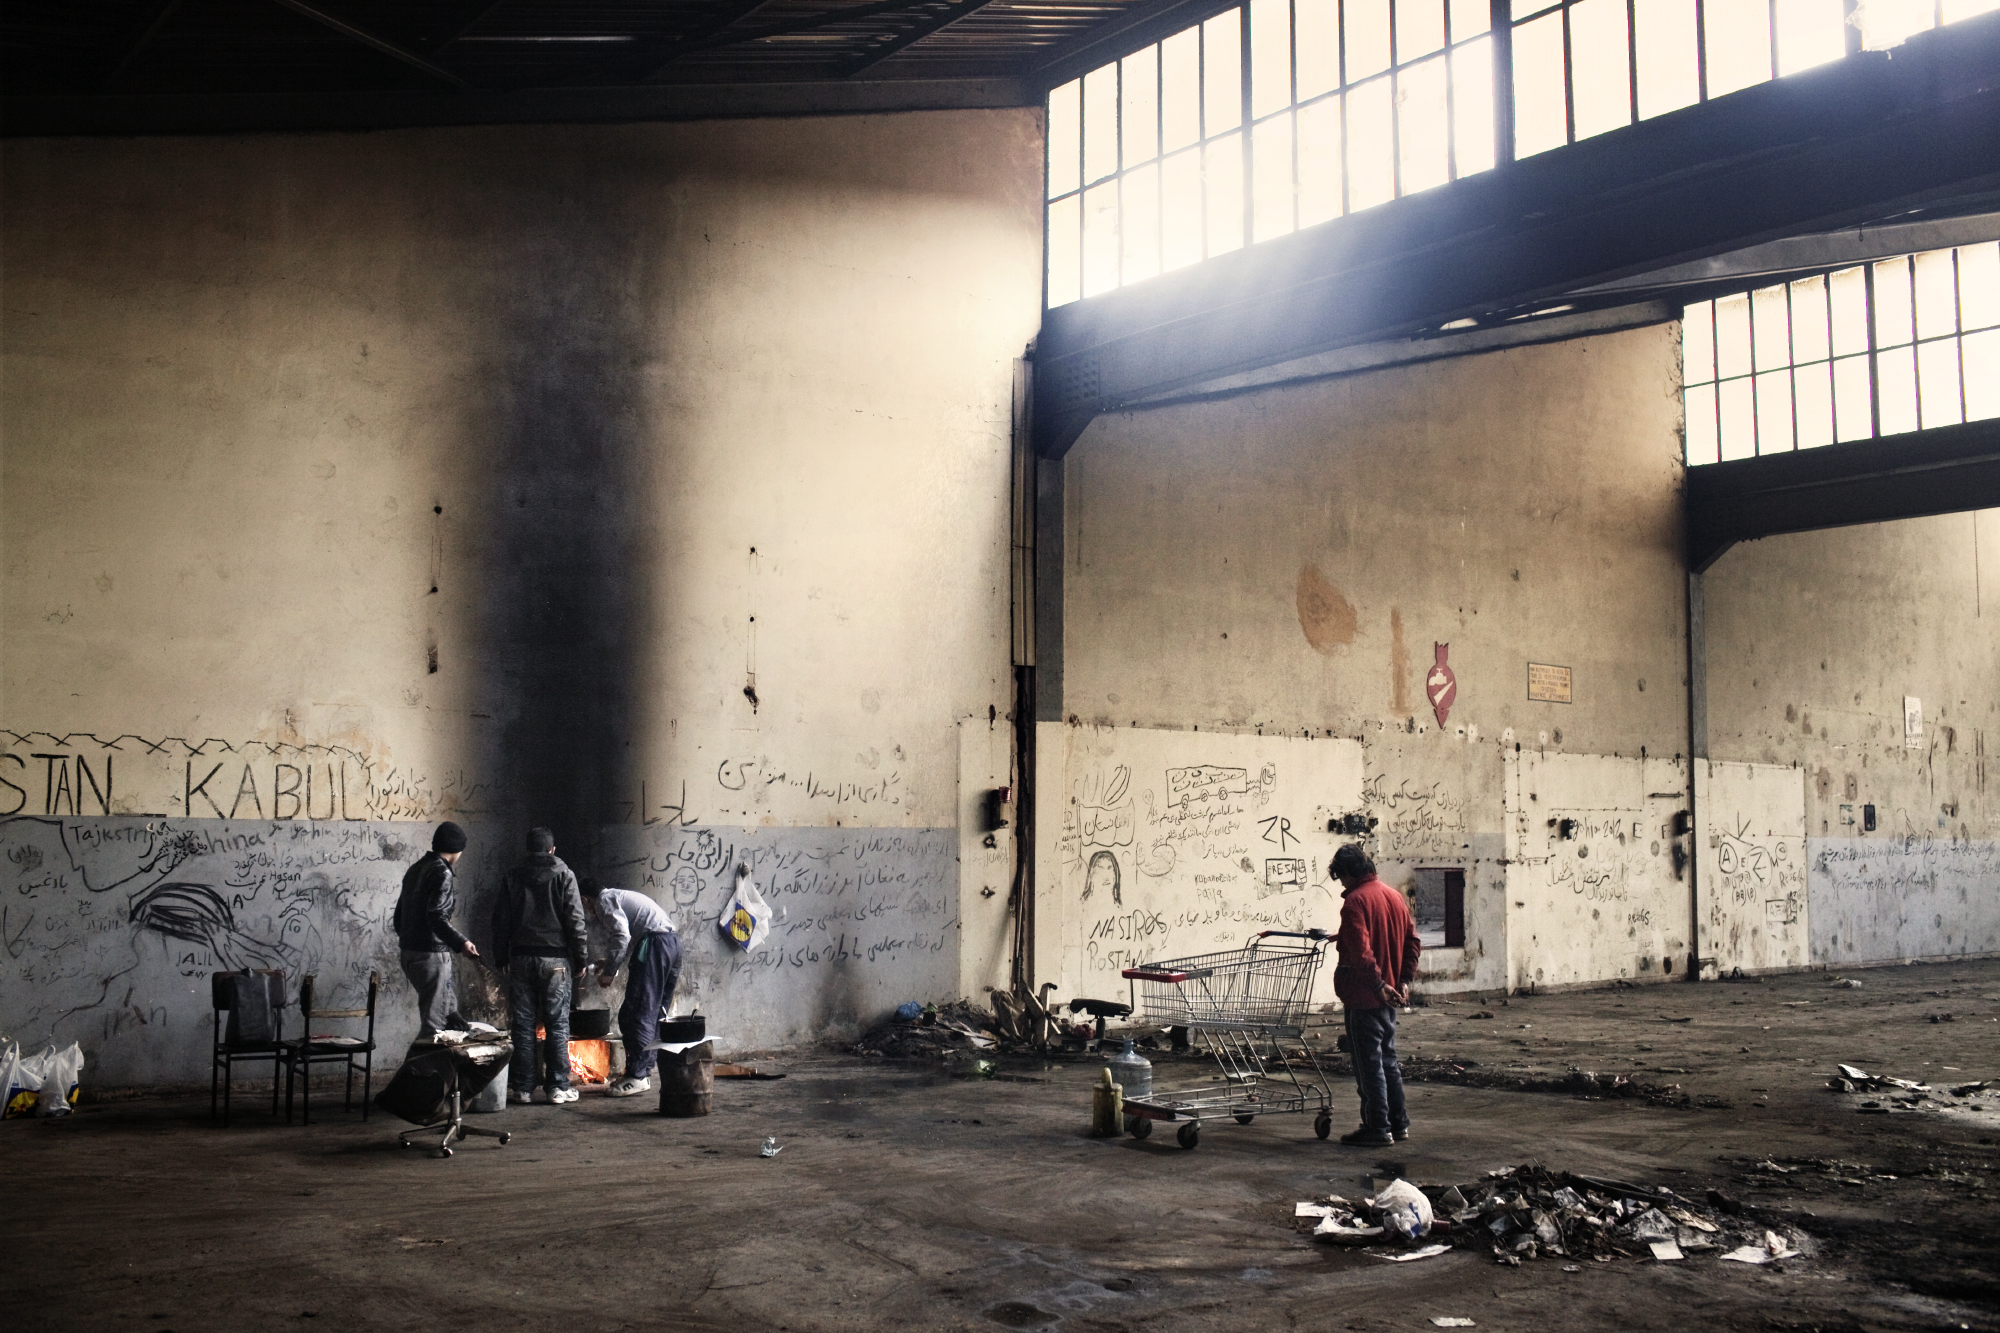 Young Afghans cooking in an abandoned factory in Patras, Greece.